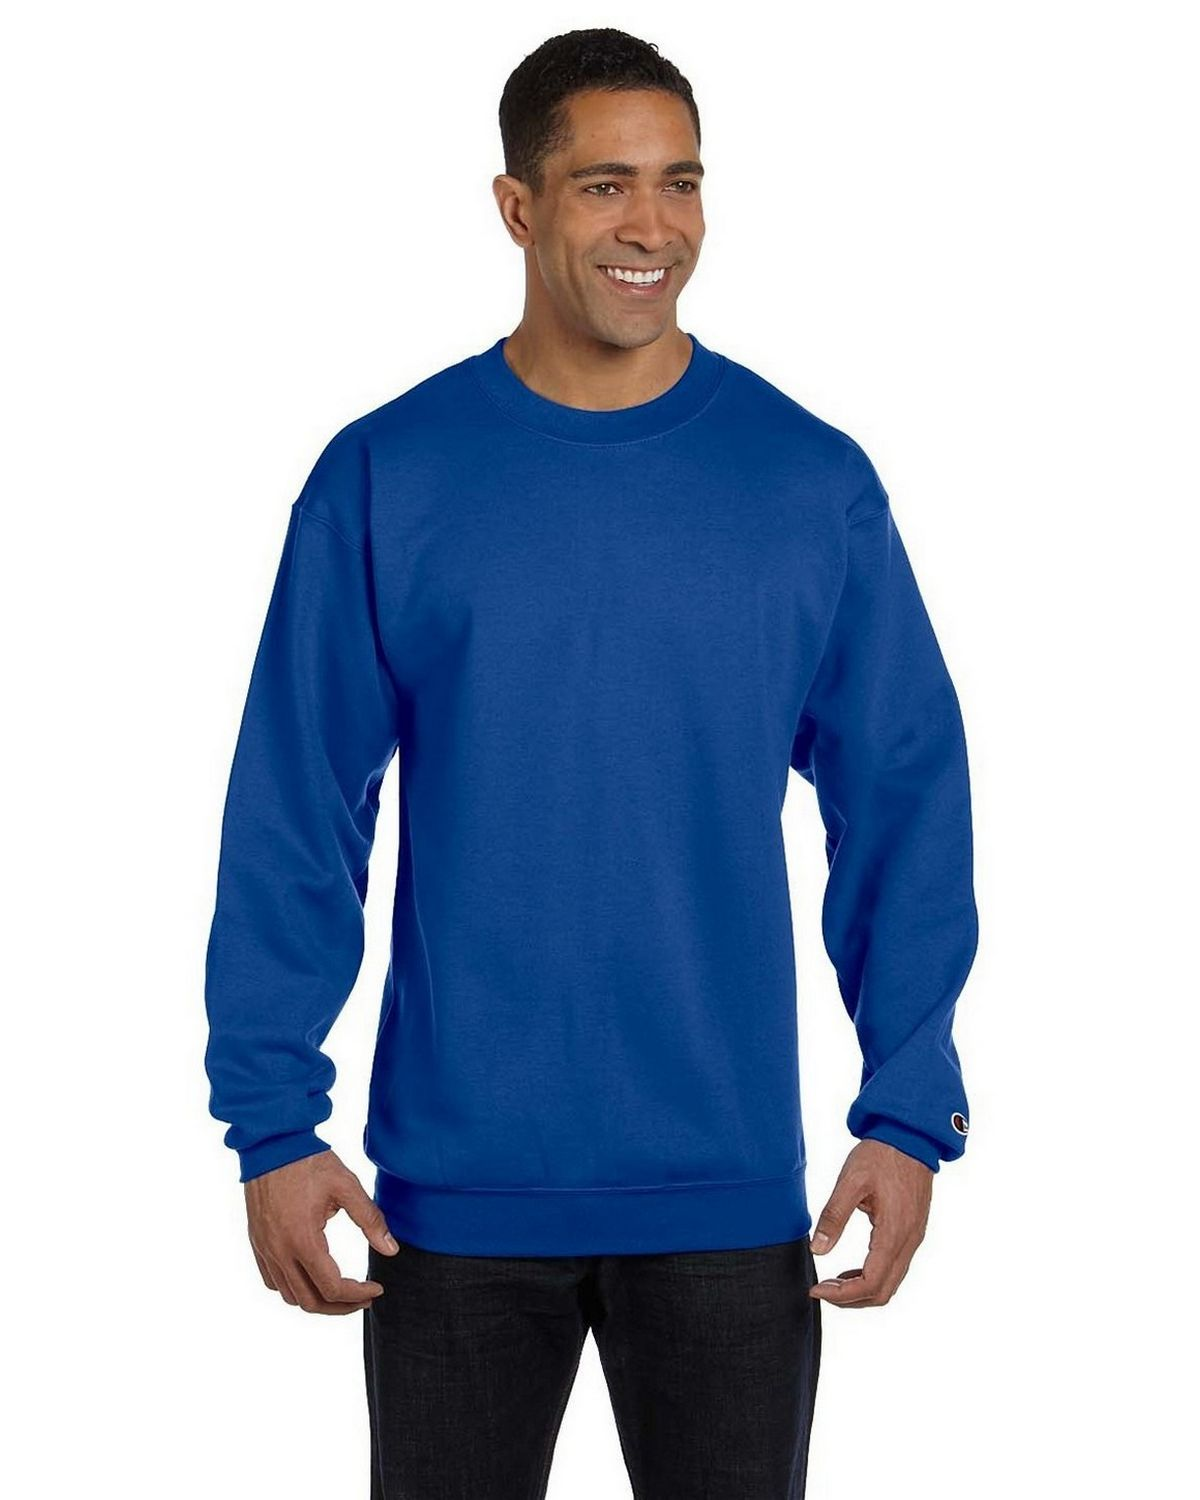 Champion S600 EcoSmart Crew Sweatshirt - Royal Blue - XL S600